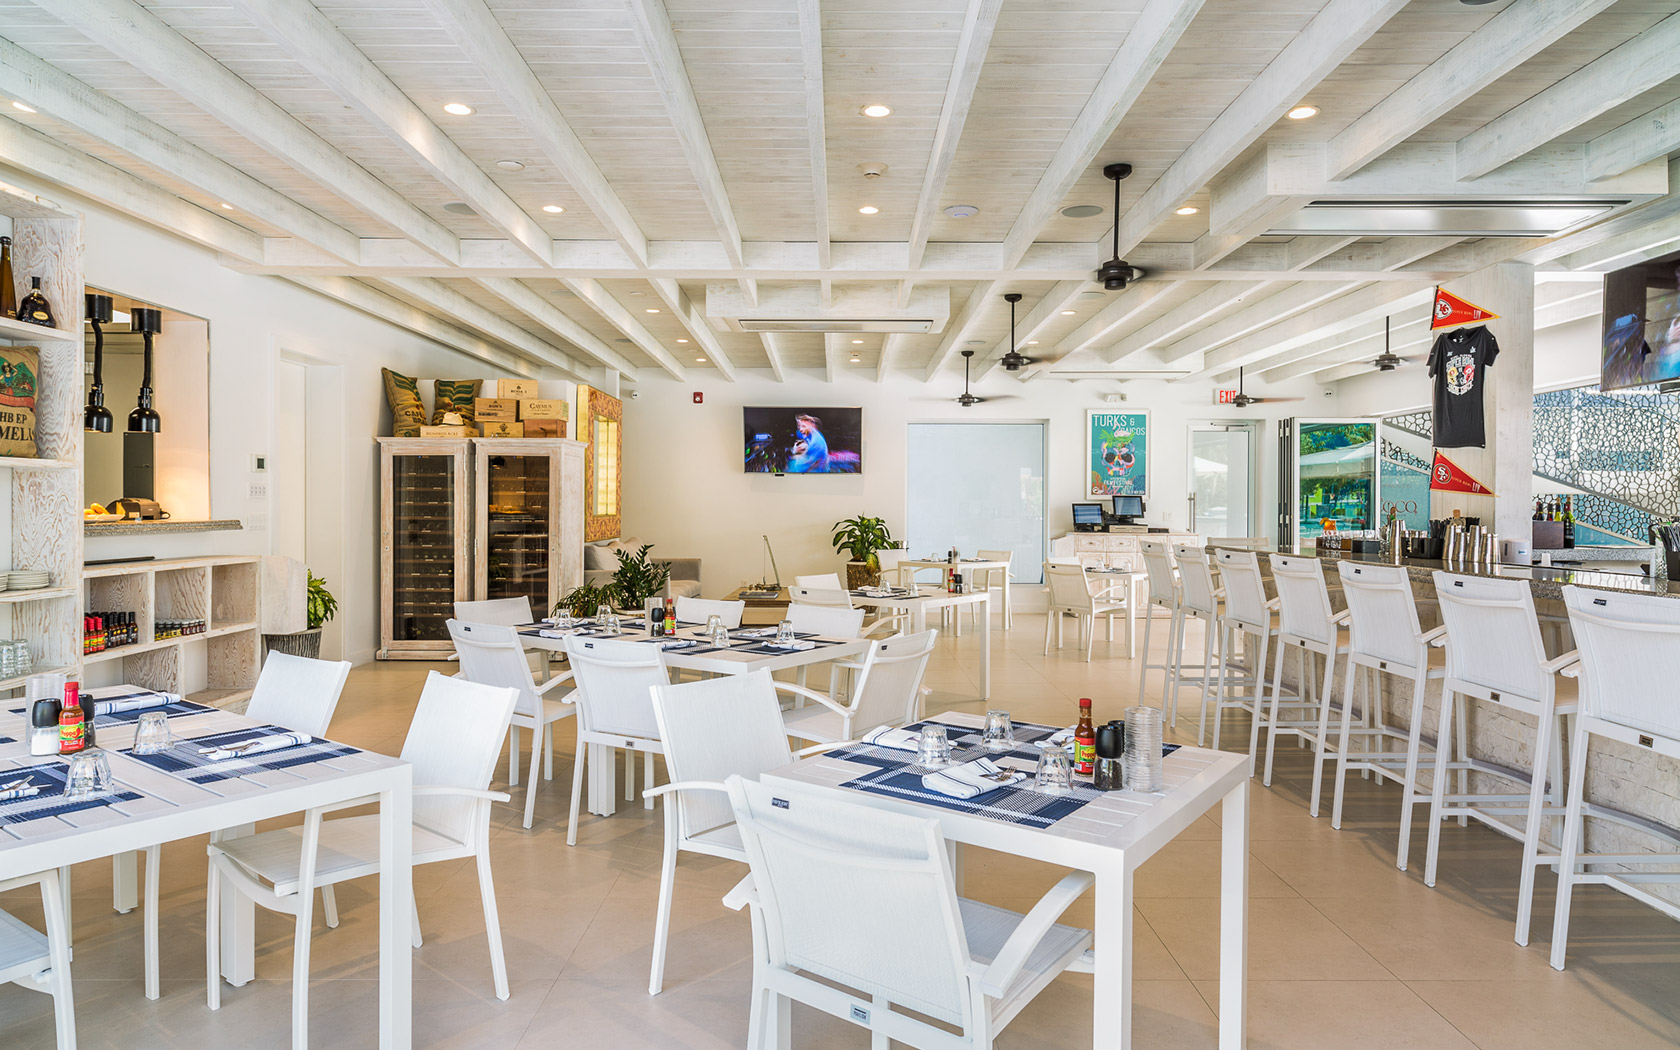 indoor dining area with white tables and chairs with a bar and various TVs